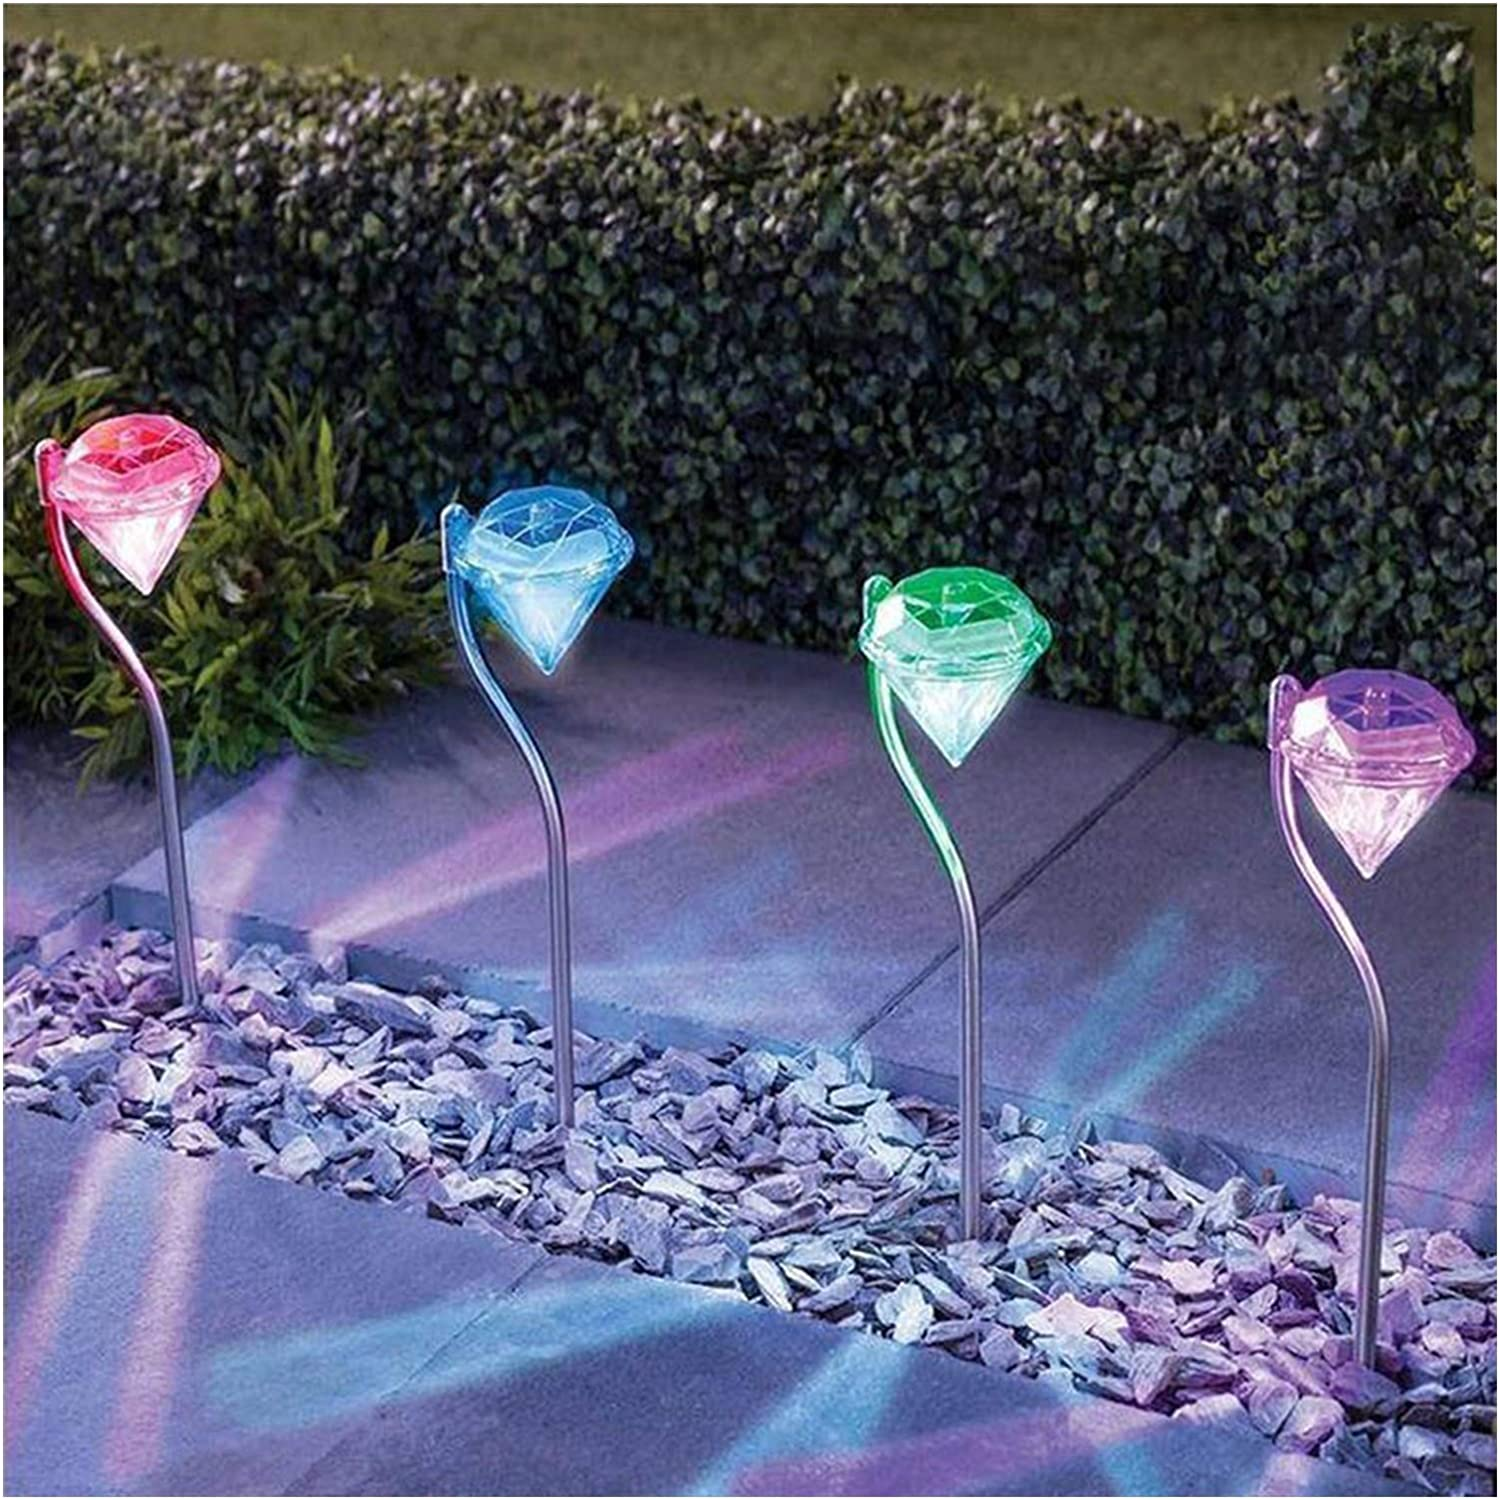 Solar Large special price Light 4pcs Outdoor LED Garden Lig Ranking integrated 1st place